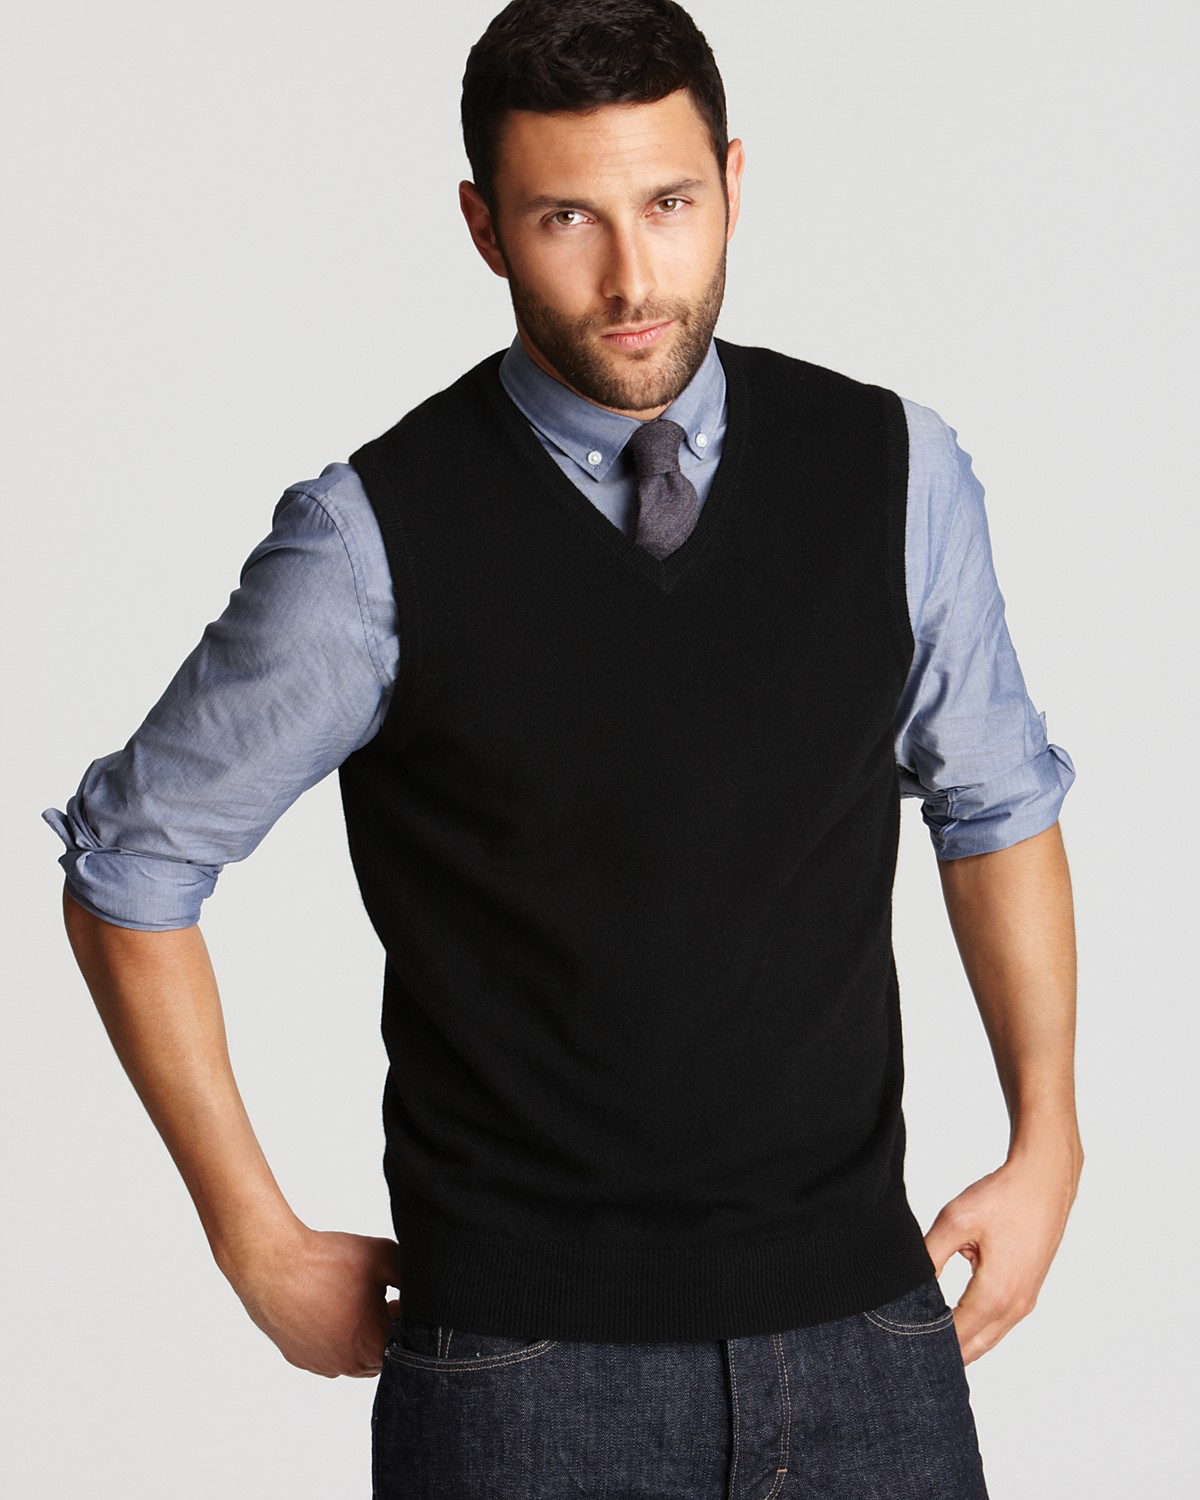 V Neck Sweater With Collared Shirt Underneath